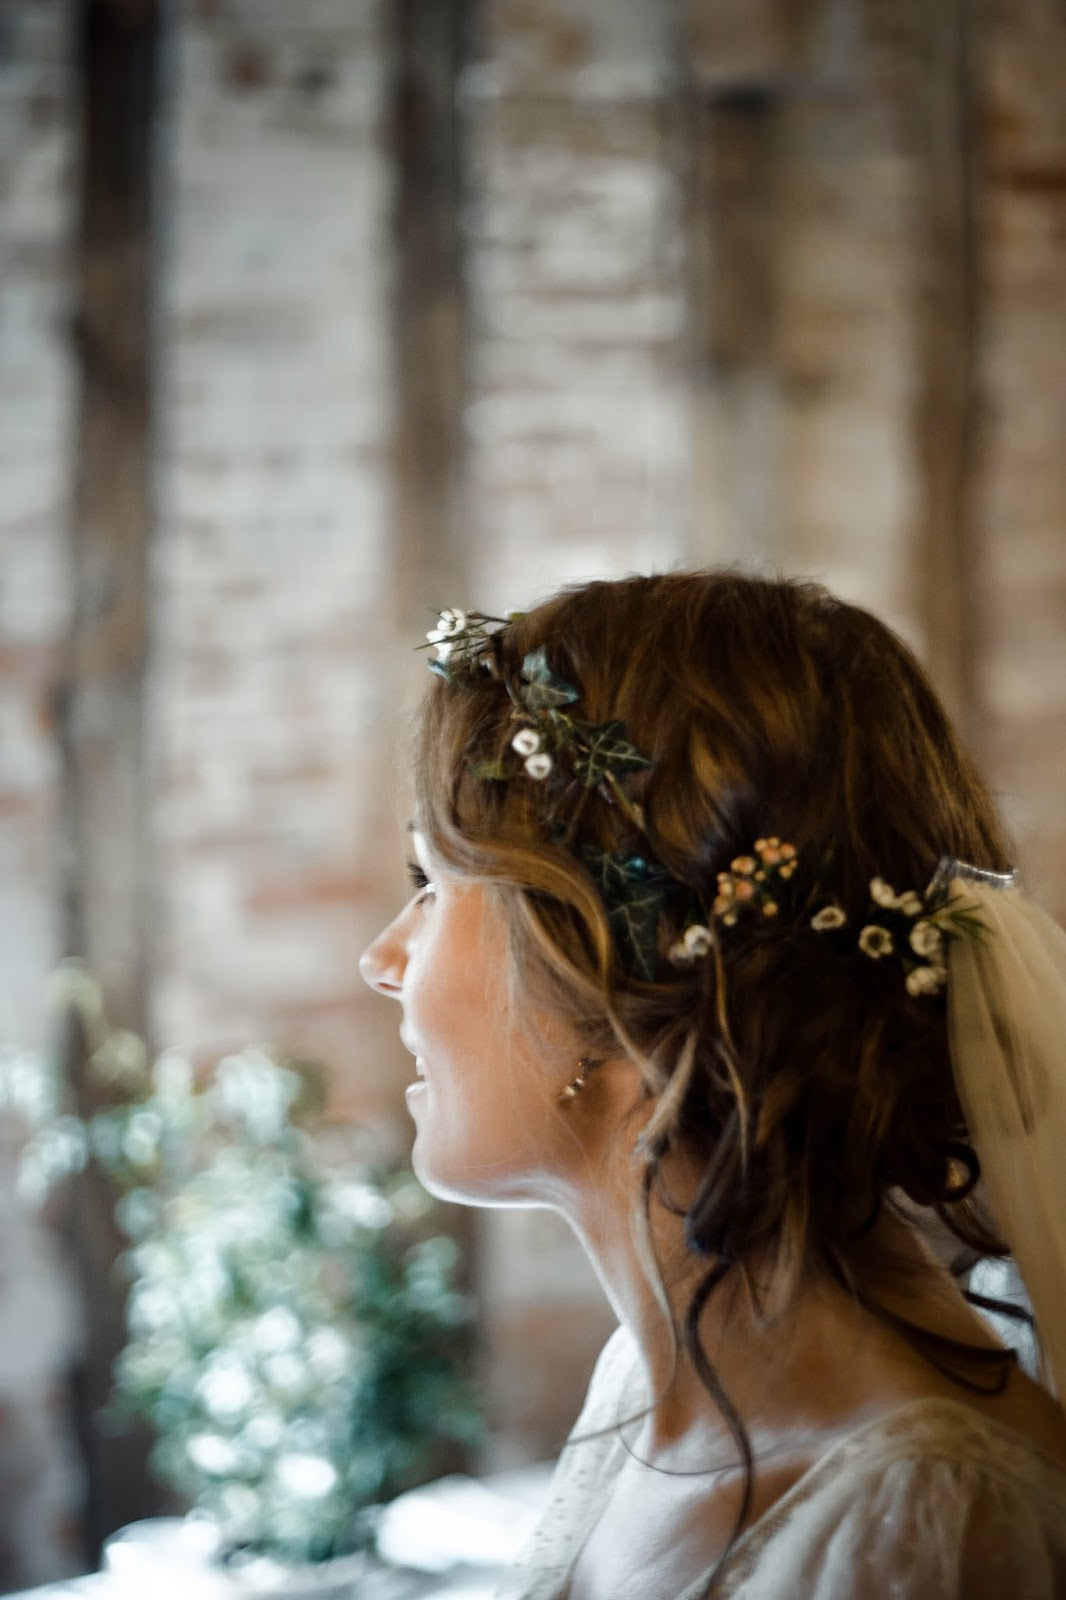 Handmade fresh floral wax flower coronet. Photo by John Pickup